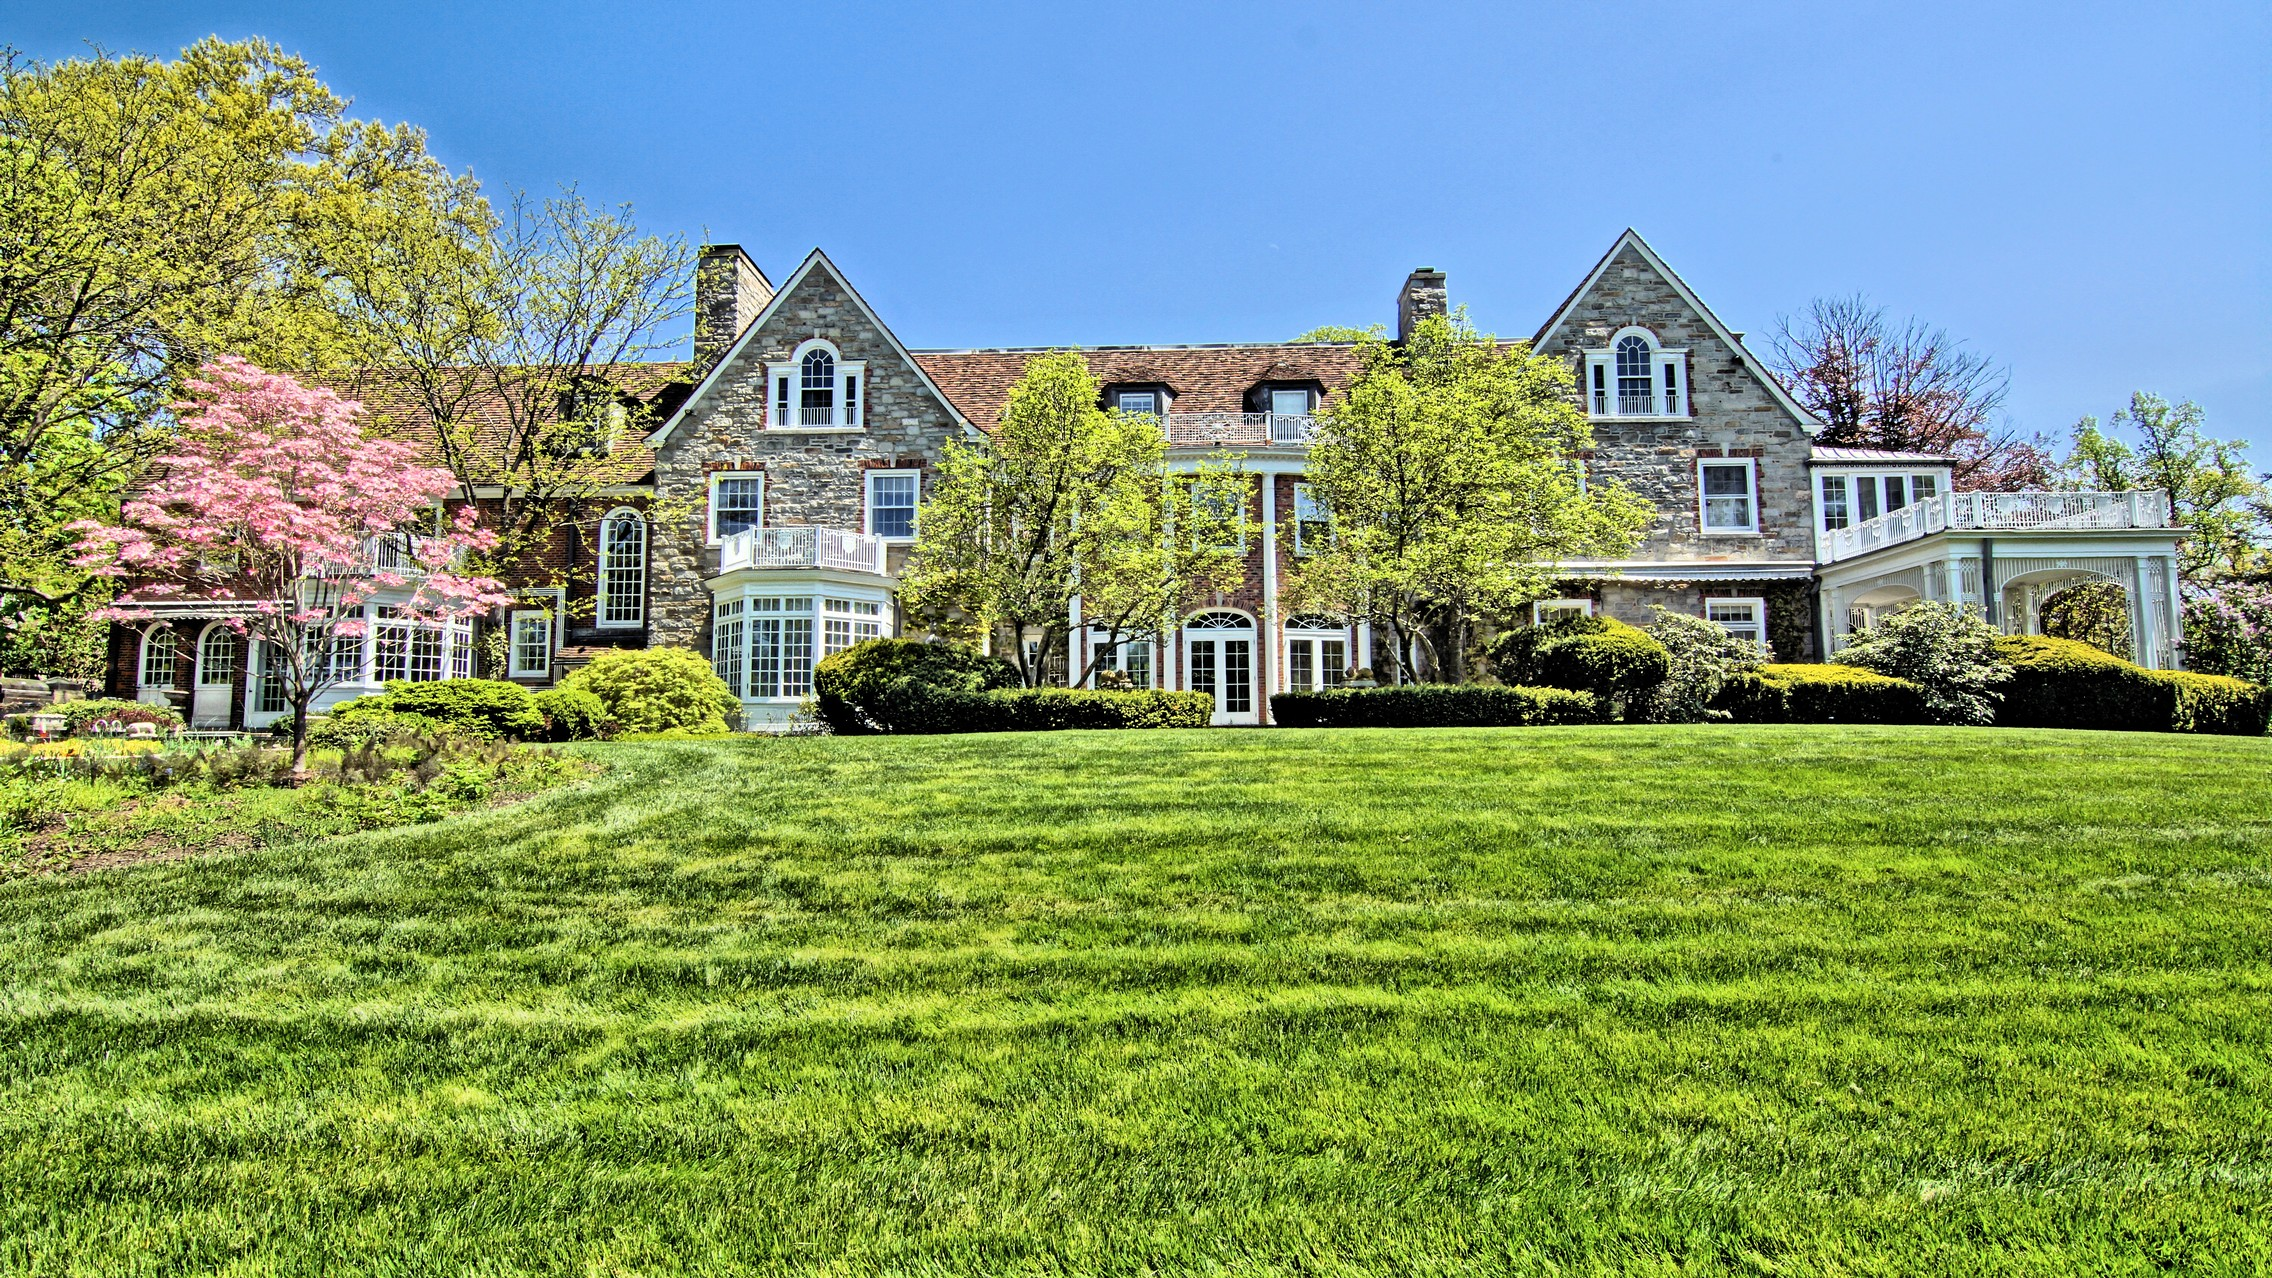 Villa per Vendita alle ore The Majesty of New England 1093 Prospect Ave West Hartford, Connecticut, 06105 Stati Uniti